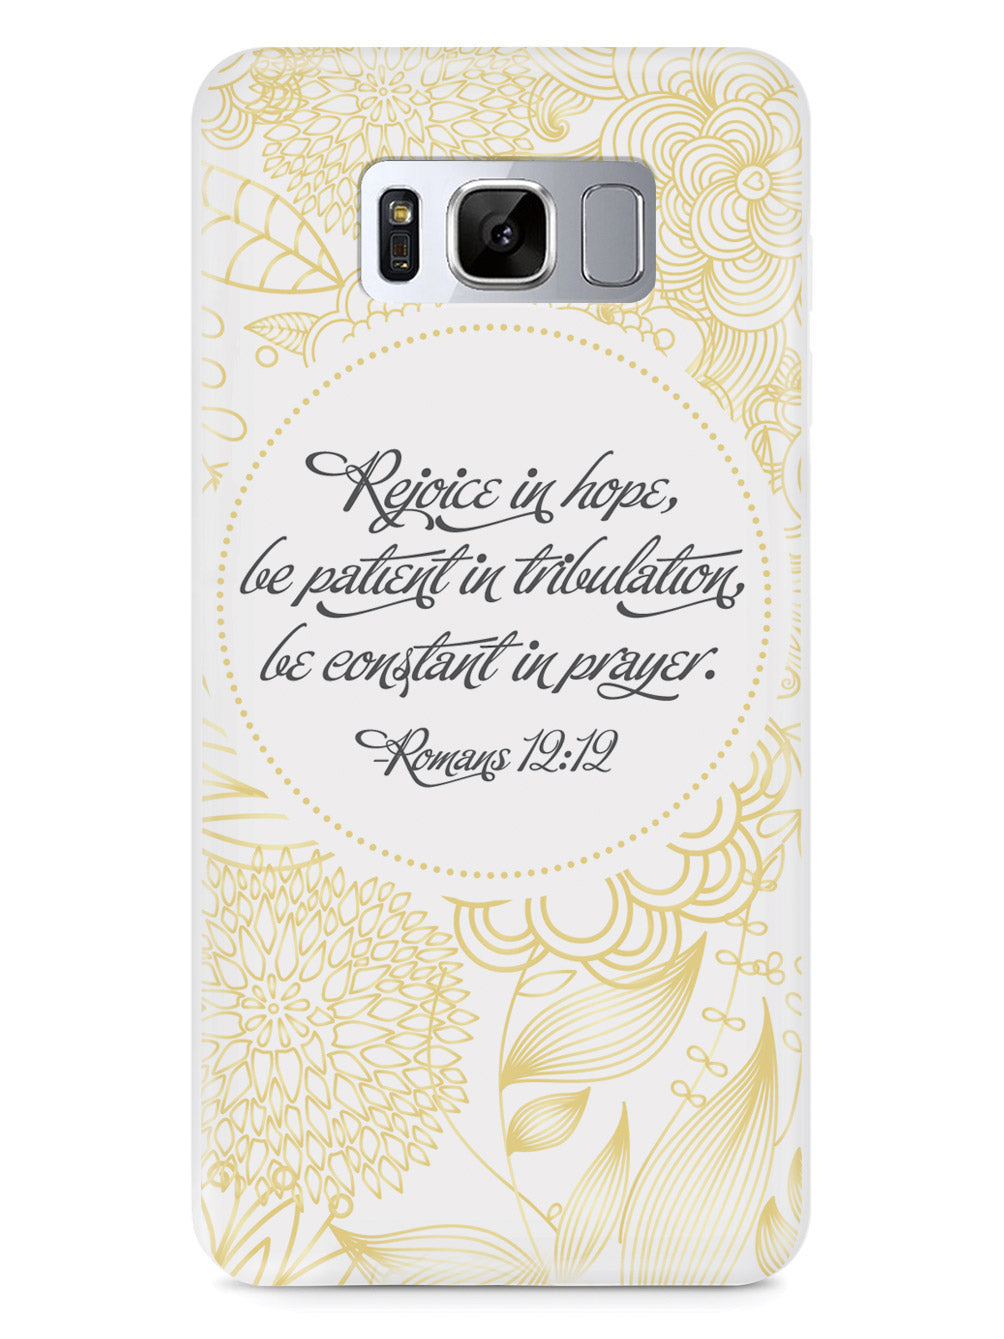 Romans 12:12 Bible Verse Case